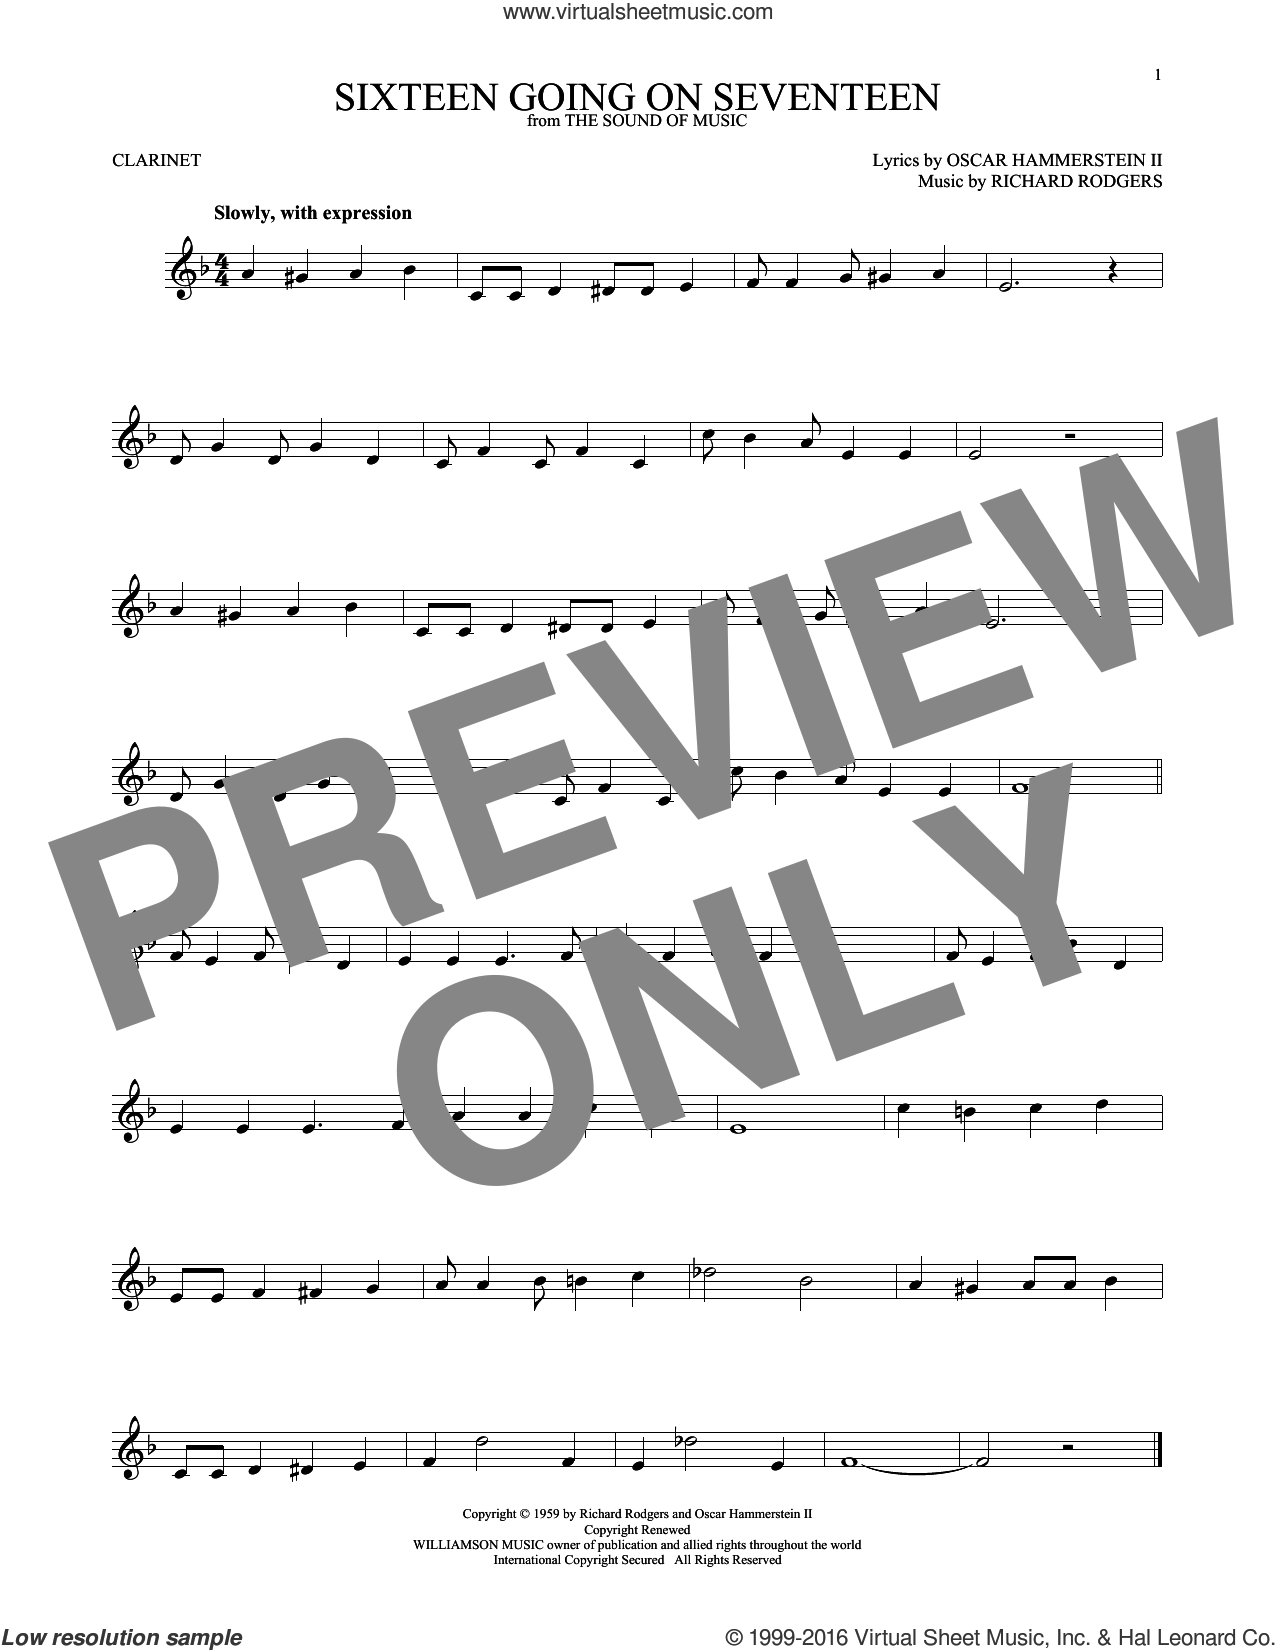 Sixteen Going On Seventeen sheet music for clarinet solo by Richard Rodgers, Rodgers & Hammerstein and Oscar II Hammerstein. Score Image Preview.